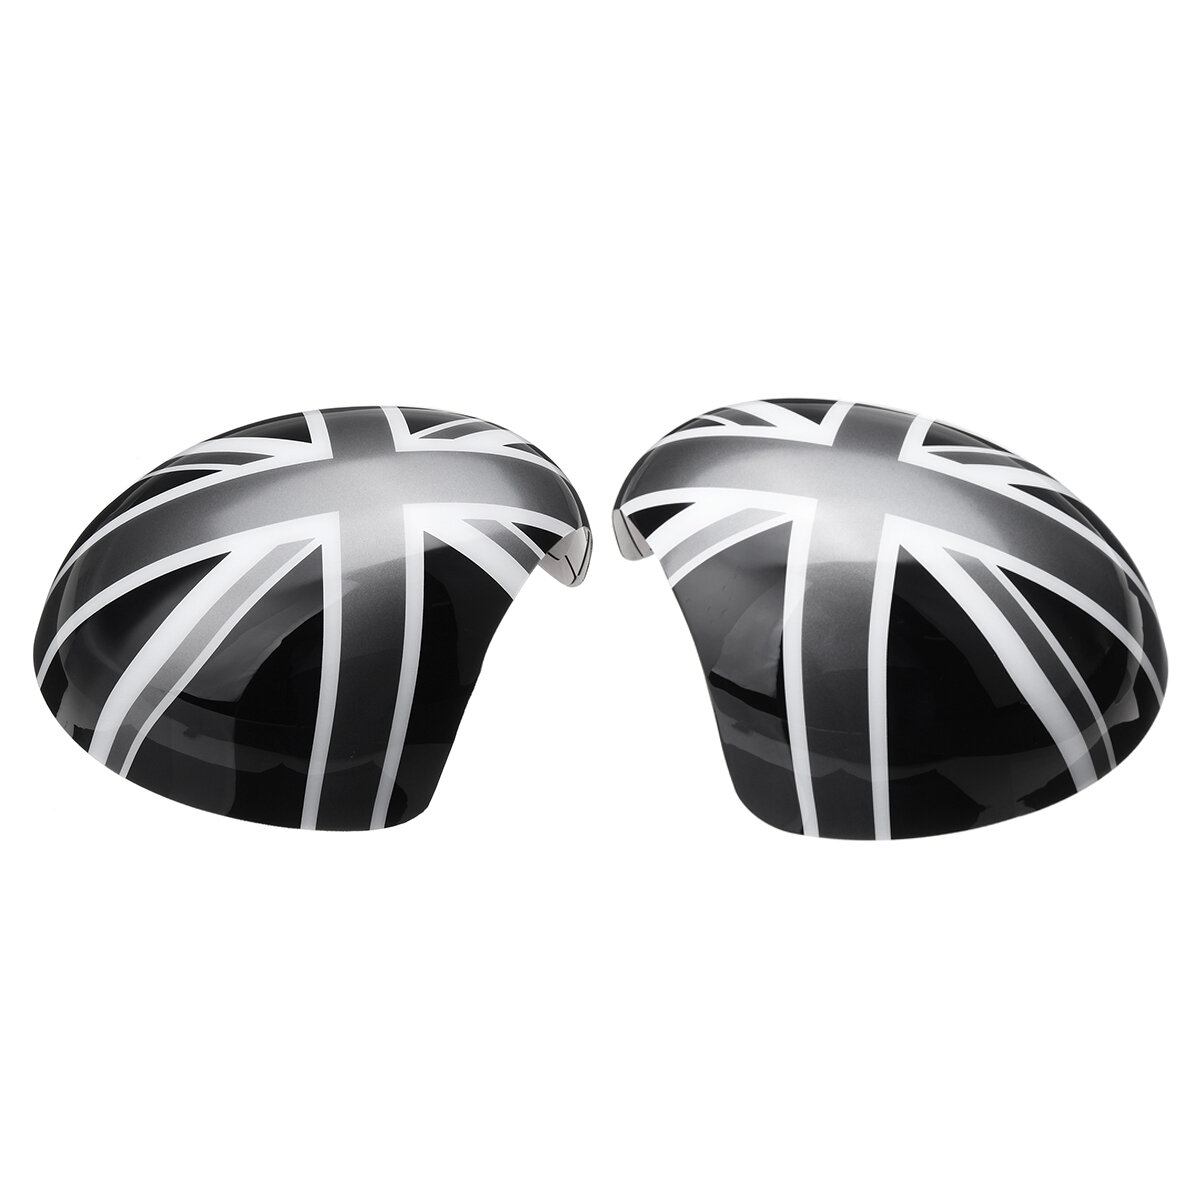 Union Jack Car Wing Mirror Cover Pair for MINI Cooper R55 R56 R57 R60 Power Fold Model